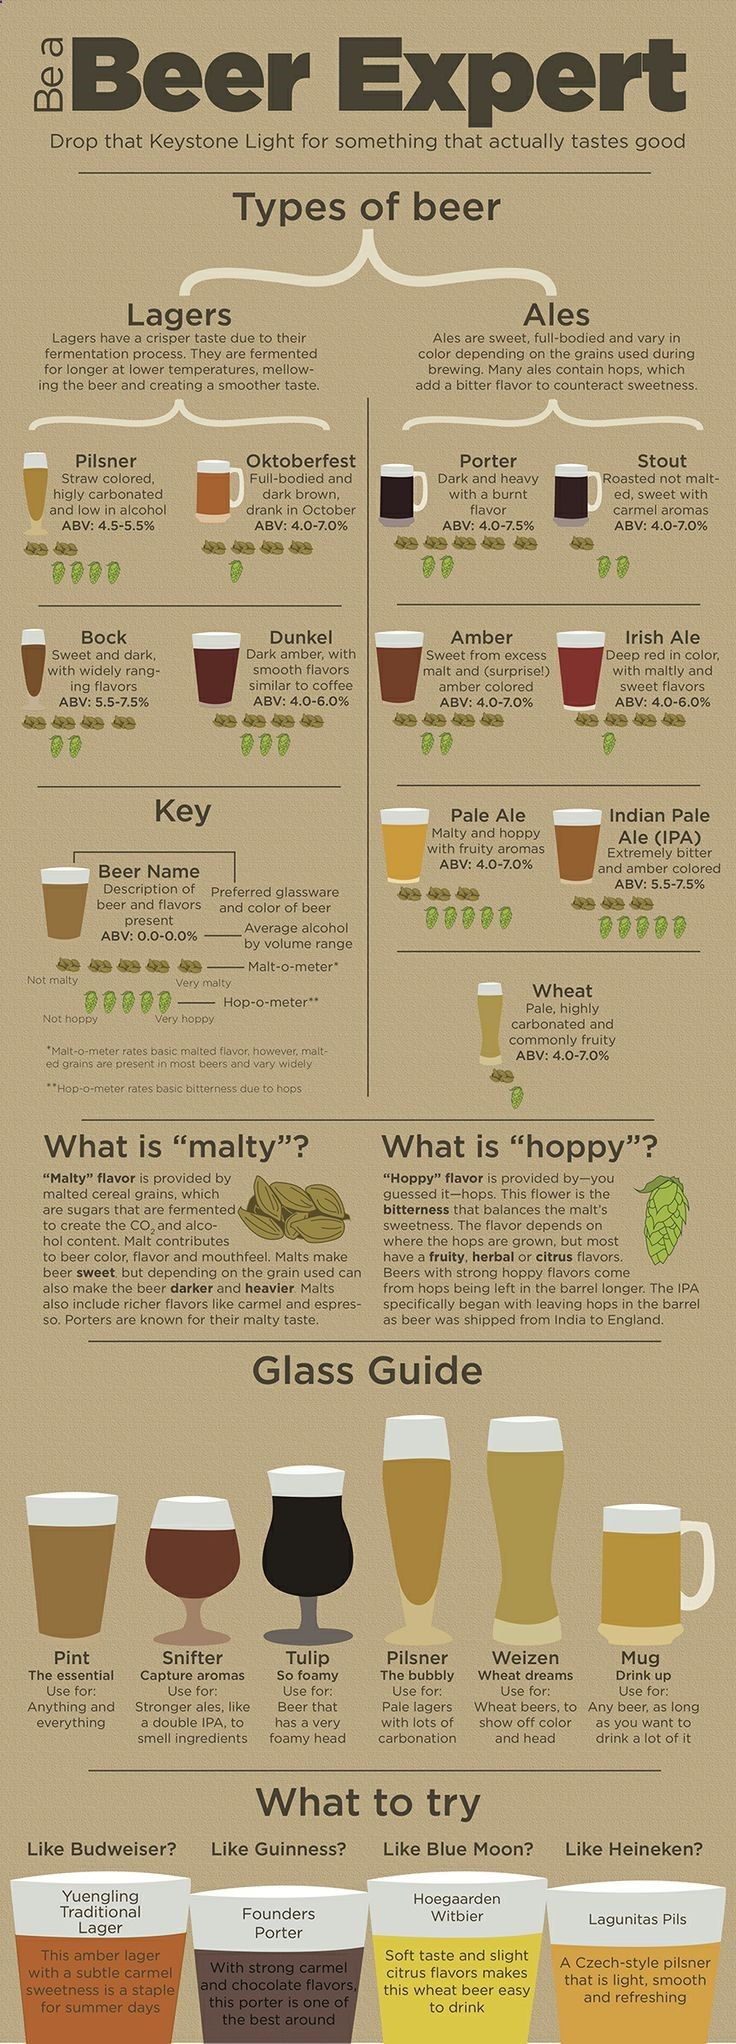 The use of cups is a cool theme throughout as it relates to beer. Even though there seems to be a bunch of text, I think its sorted out in a way that its not overwhelming which is nice.